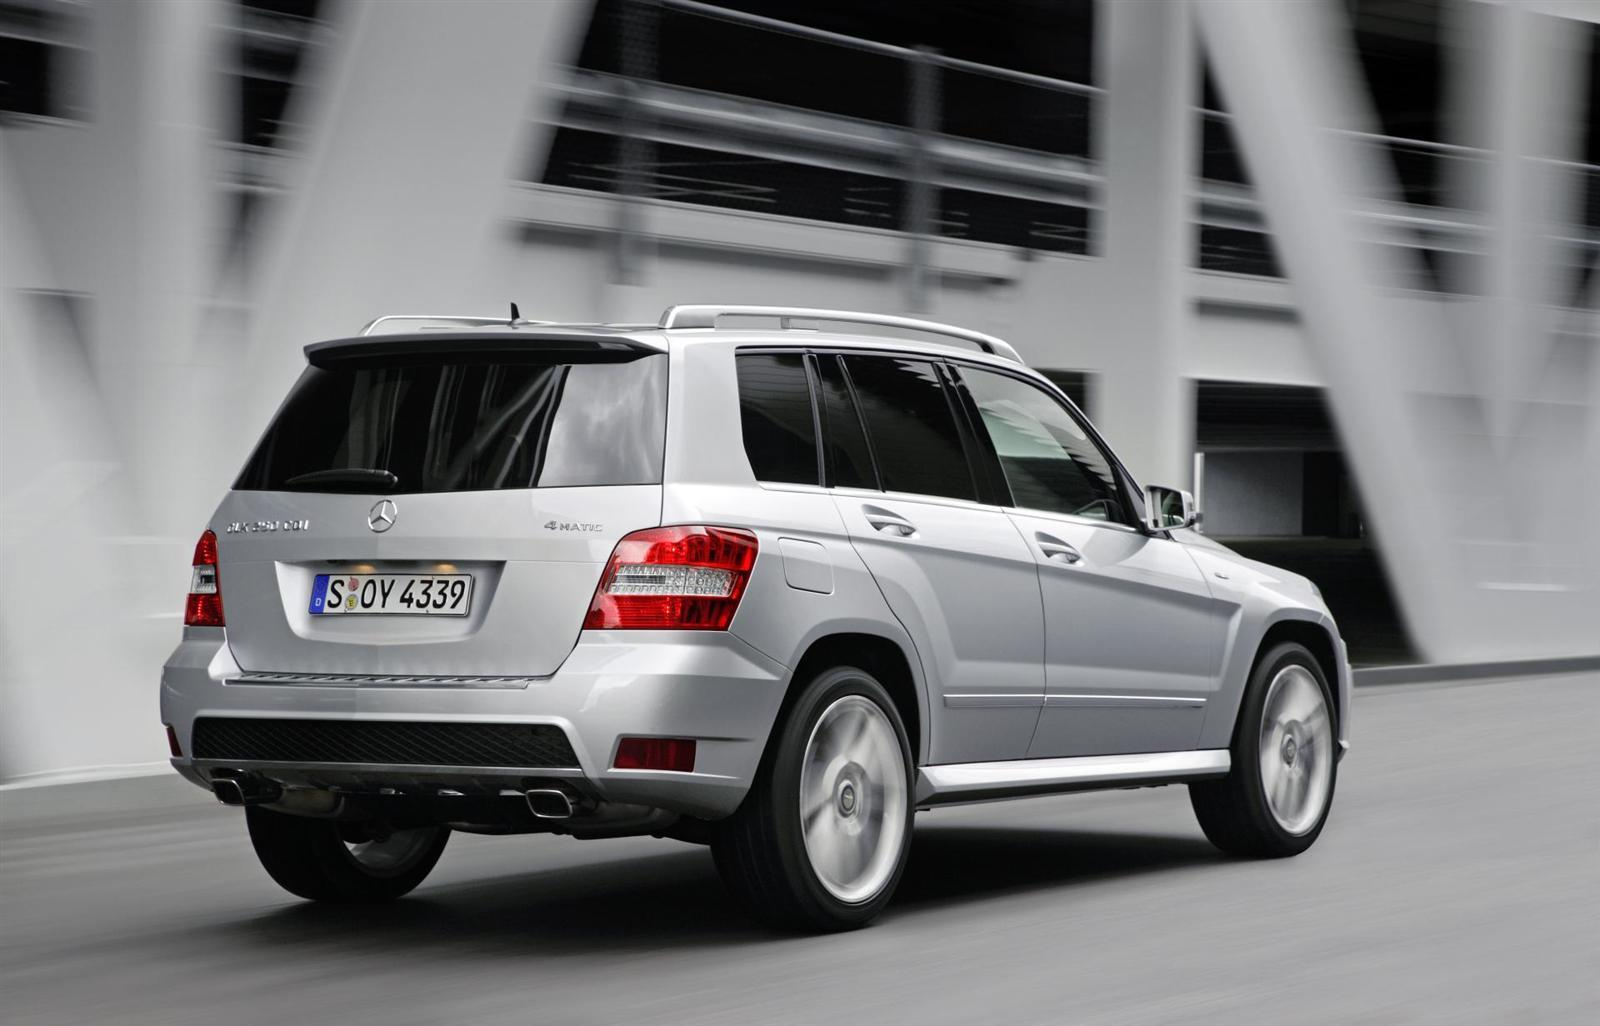 2012 mercedes benz glk class information and photos for 2012 mercedes benz glk class